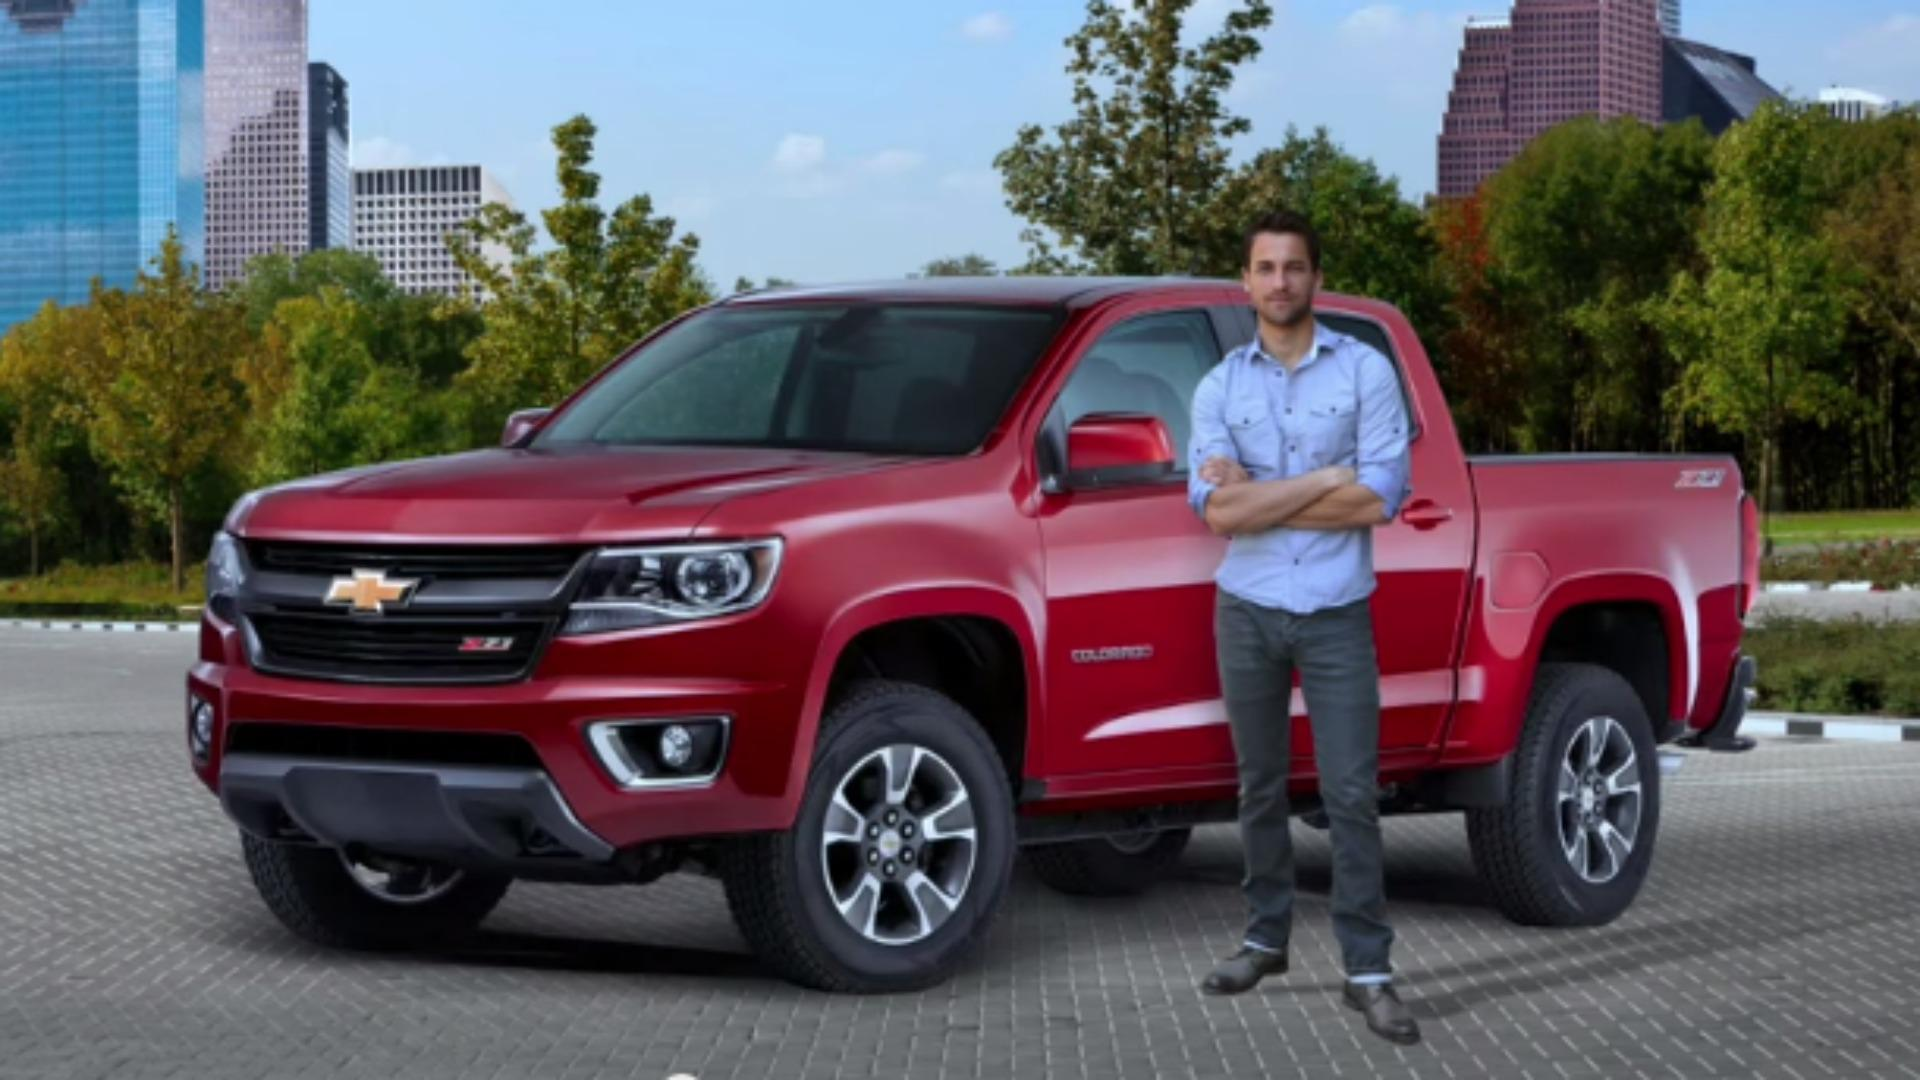 Chevy Silverado Guy >> Super Bowl 49 Was That Chevy Commercial Sexist Toward Men Video